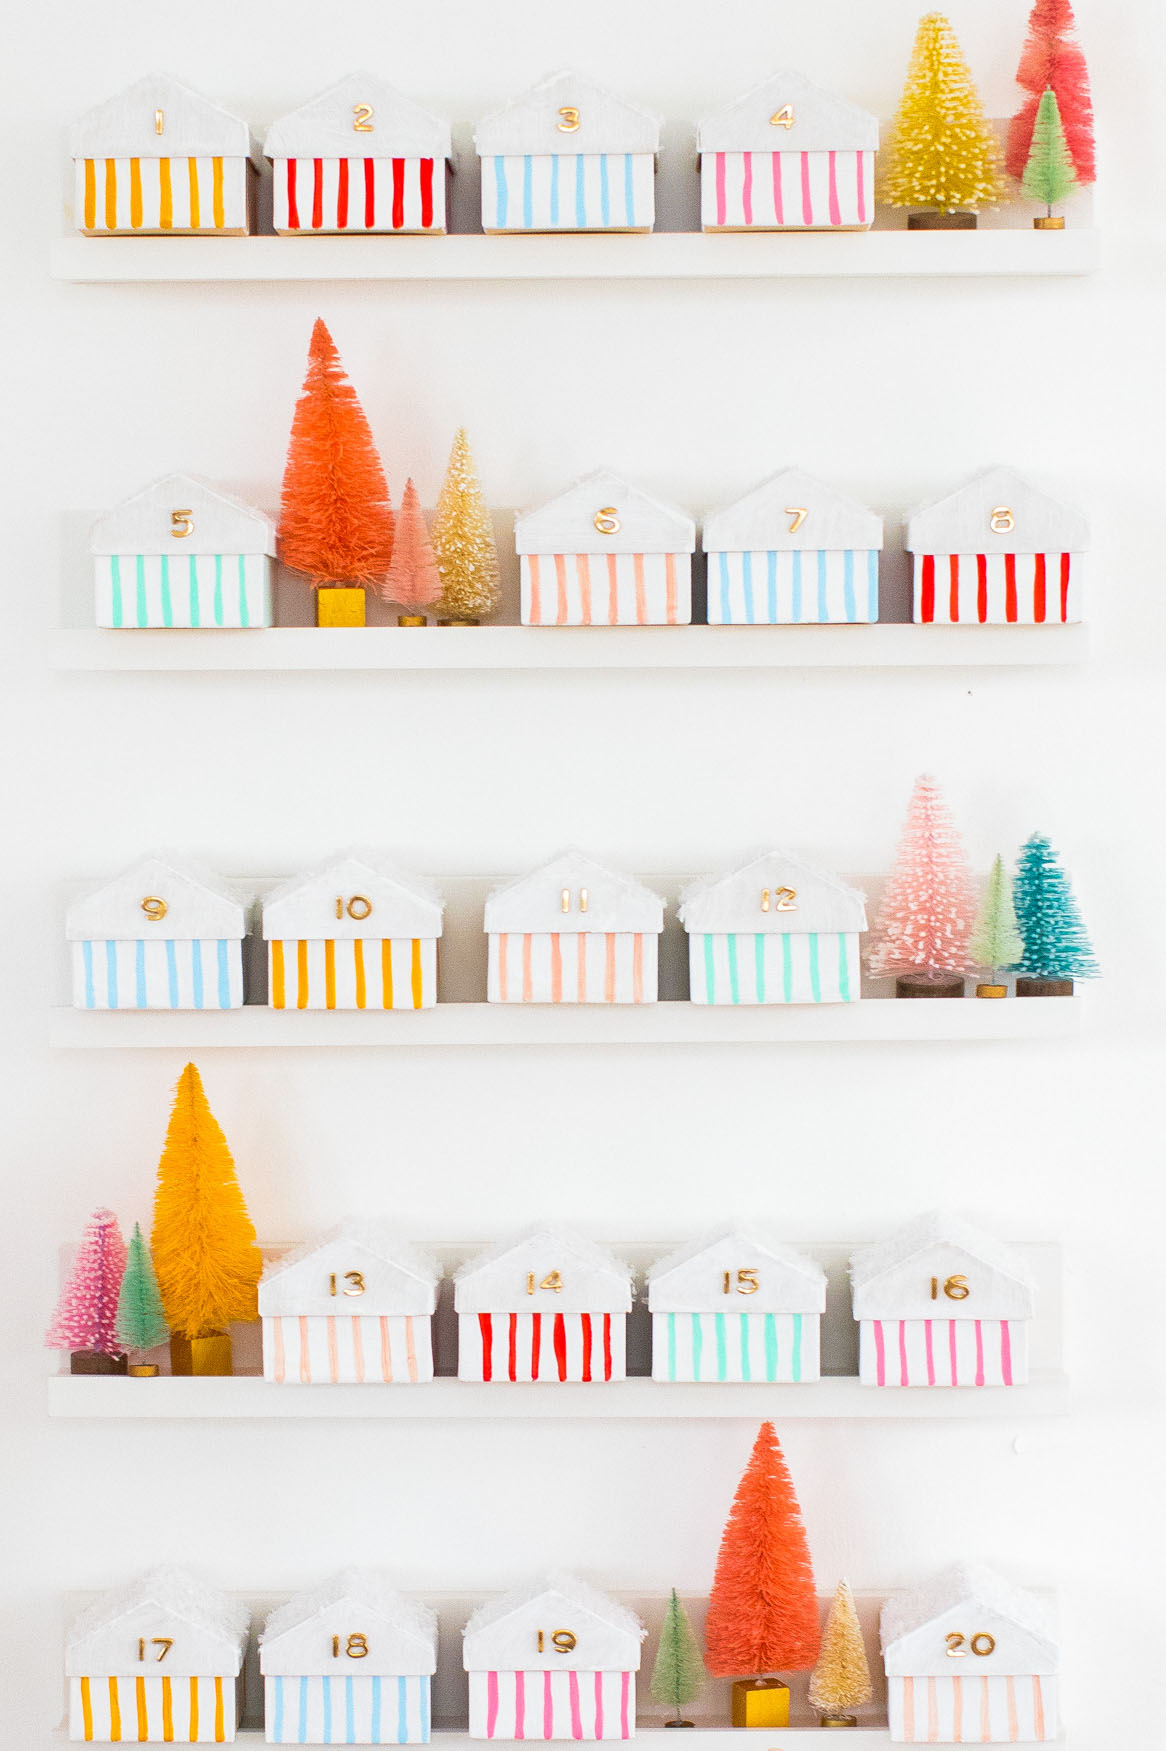 final advent calendar for kids! Colorful Houses DIY Advent Calendar by top Houston lifesyle blogger Ashley Rose of Sugar and Cloth #diy #christmas #advent #holiday #decor #idea #howto #kids #crafts